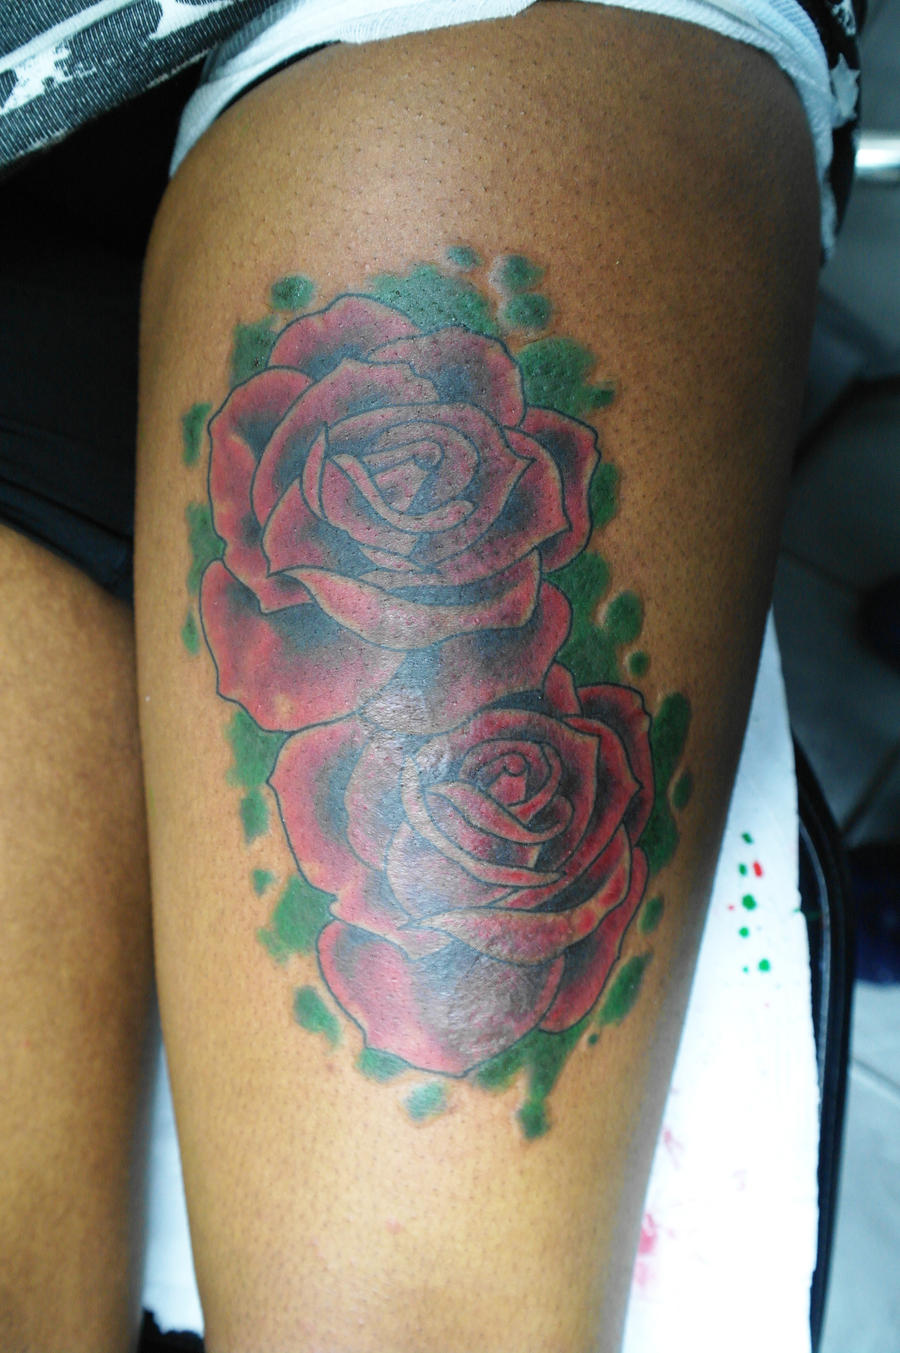 Burn scar rose cover up 2 by ashtonbkeje on deviantart for Scar tattoo cover up